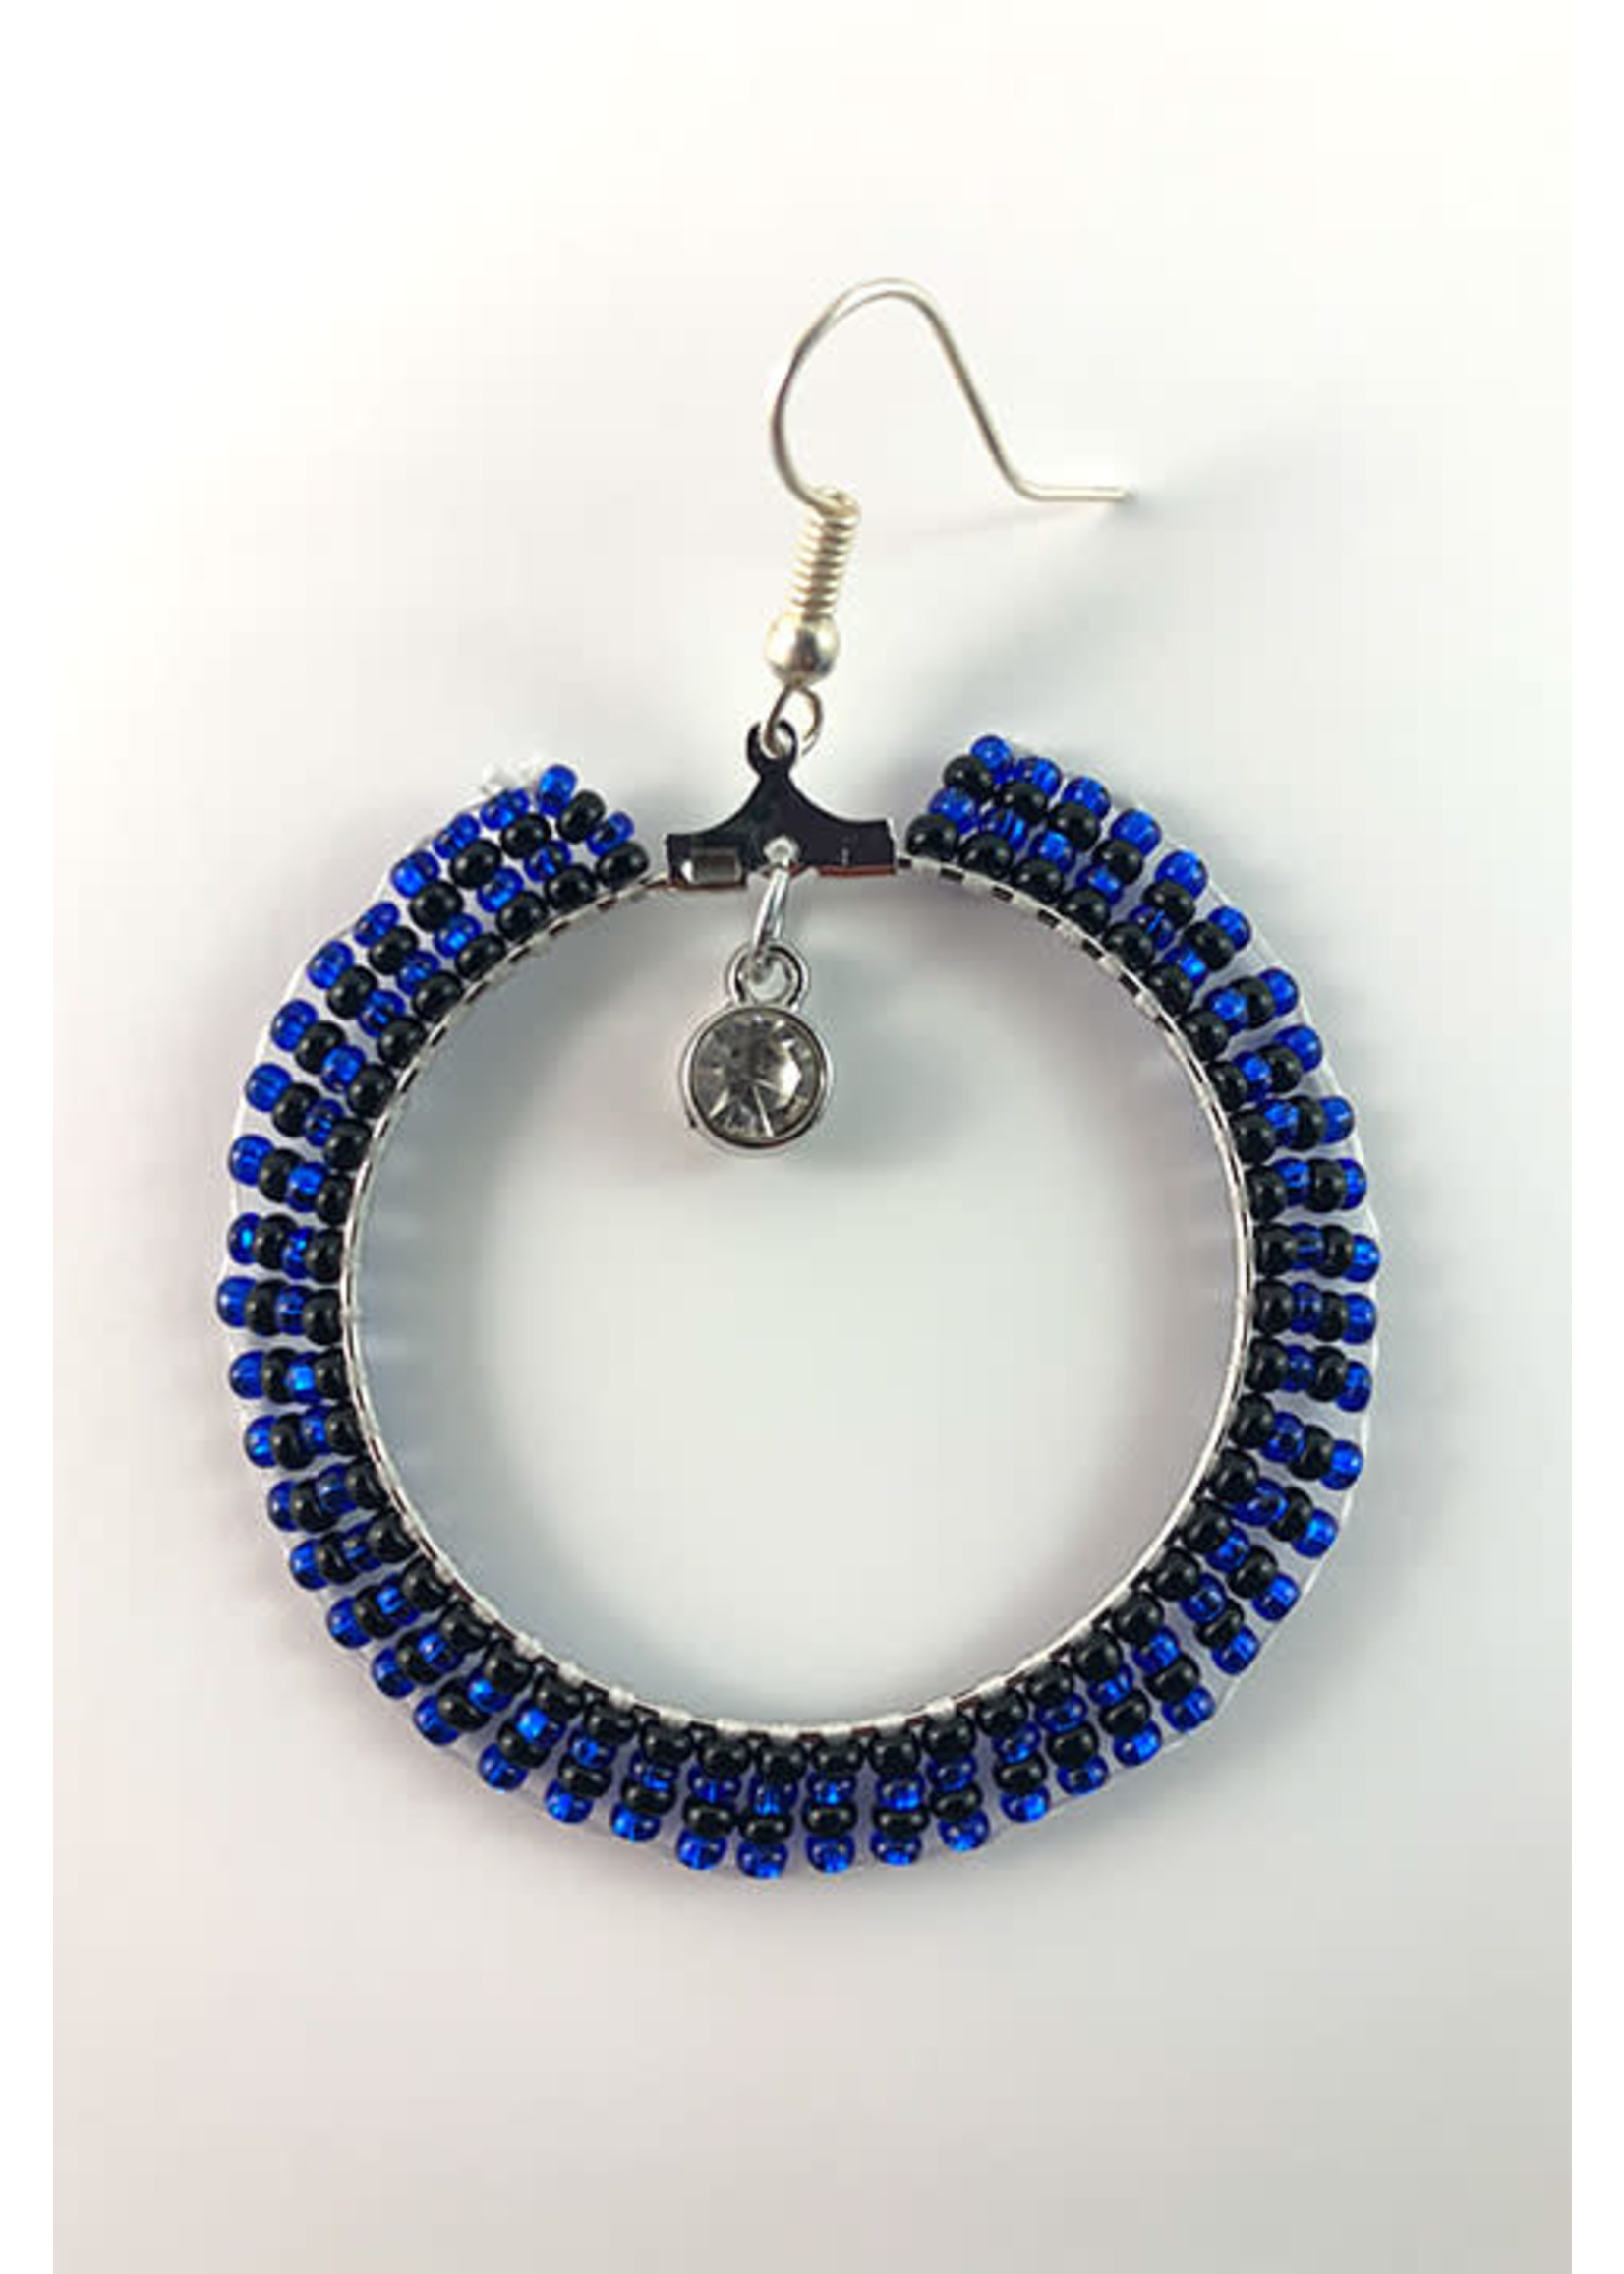 Beaded Earrings Hoops Silver Lined Blue and Opaque Black with Jewel (SOLD)